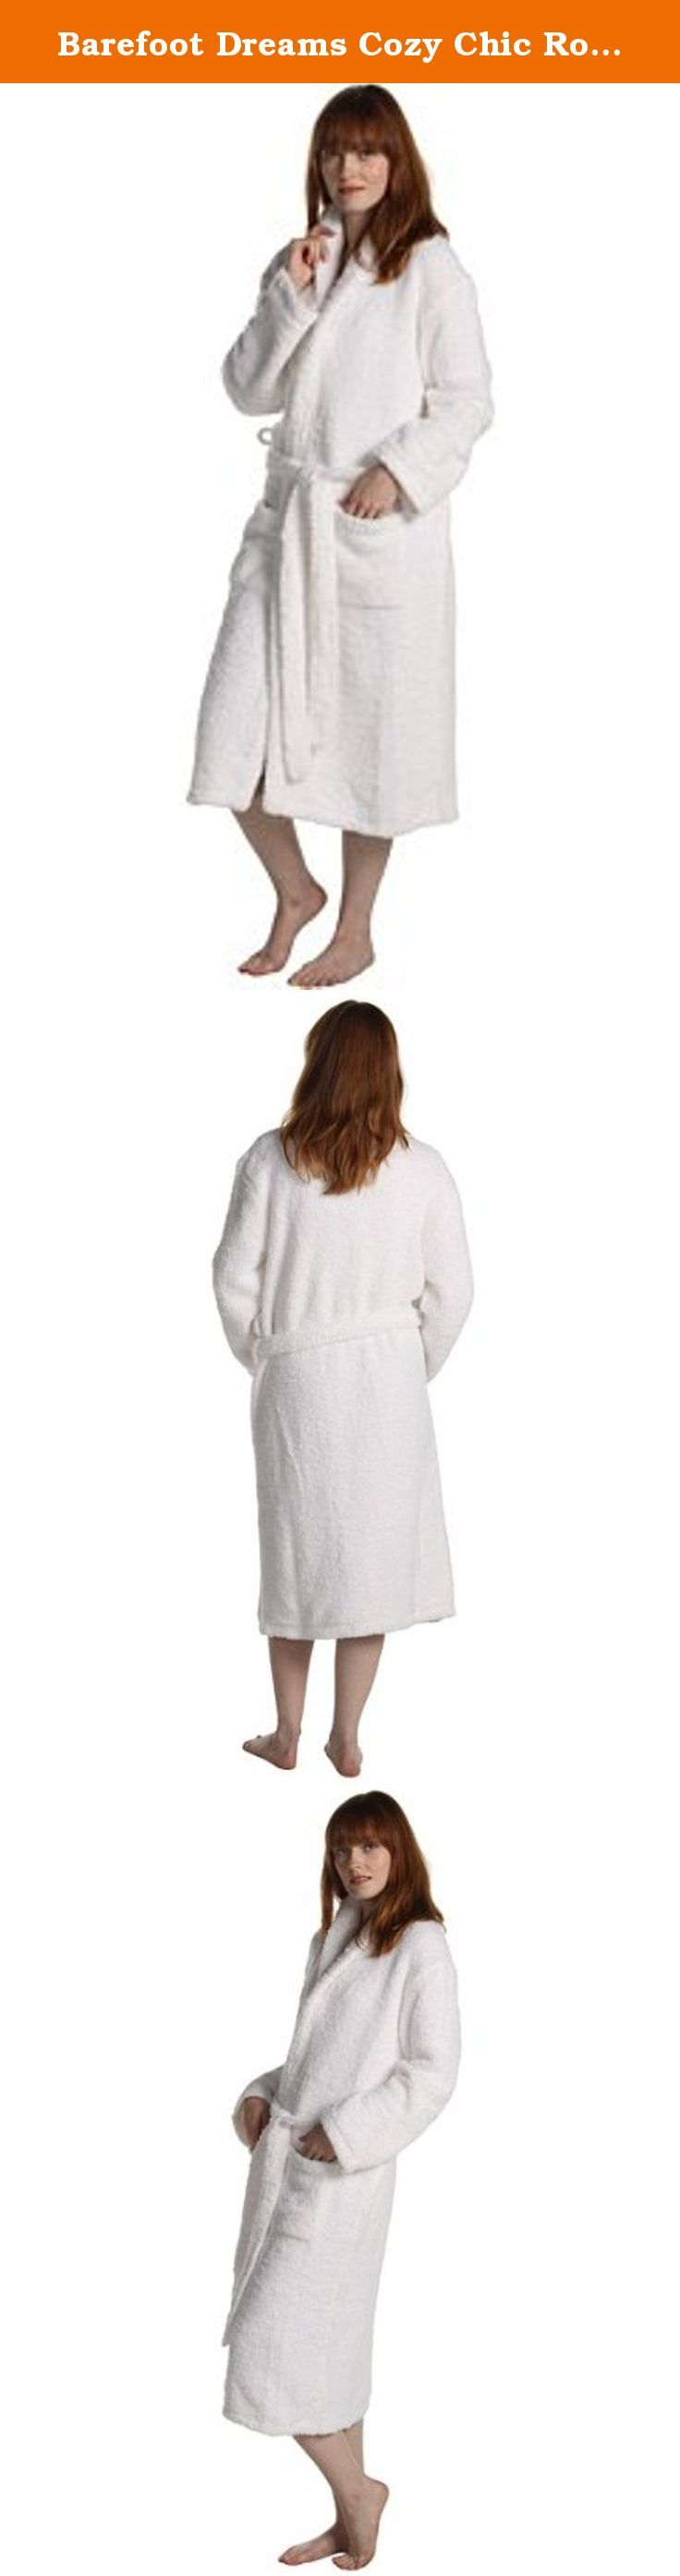 """Barefoot Dreams Cozy Chic Robes - Color: White, Size: 3. Envelop yourself in a lush sumptuous Cozy Chic Grown Up Robe and watch the cares of the world fade away. Made of the famous CozyChic knit, the Grown Up Robe is shawl collared, double belt looped, washable and dryable. Great year-round gift for all occasions: Christmas, Valentine's Day, Mother's Day, Father's Day, or an elegant birthday, wedding or house warming gift. Size 1 = 5'6"""" and under, approx length 42""""; Size 2 = 5'6"""" to 6'0""""..."""